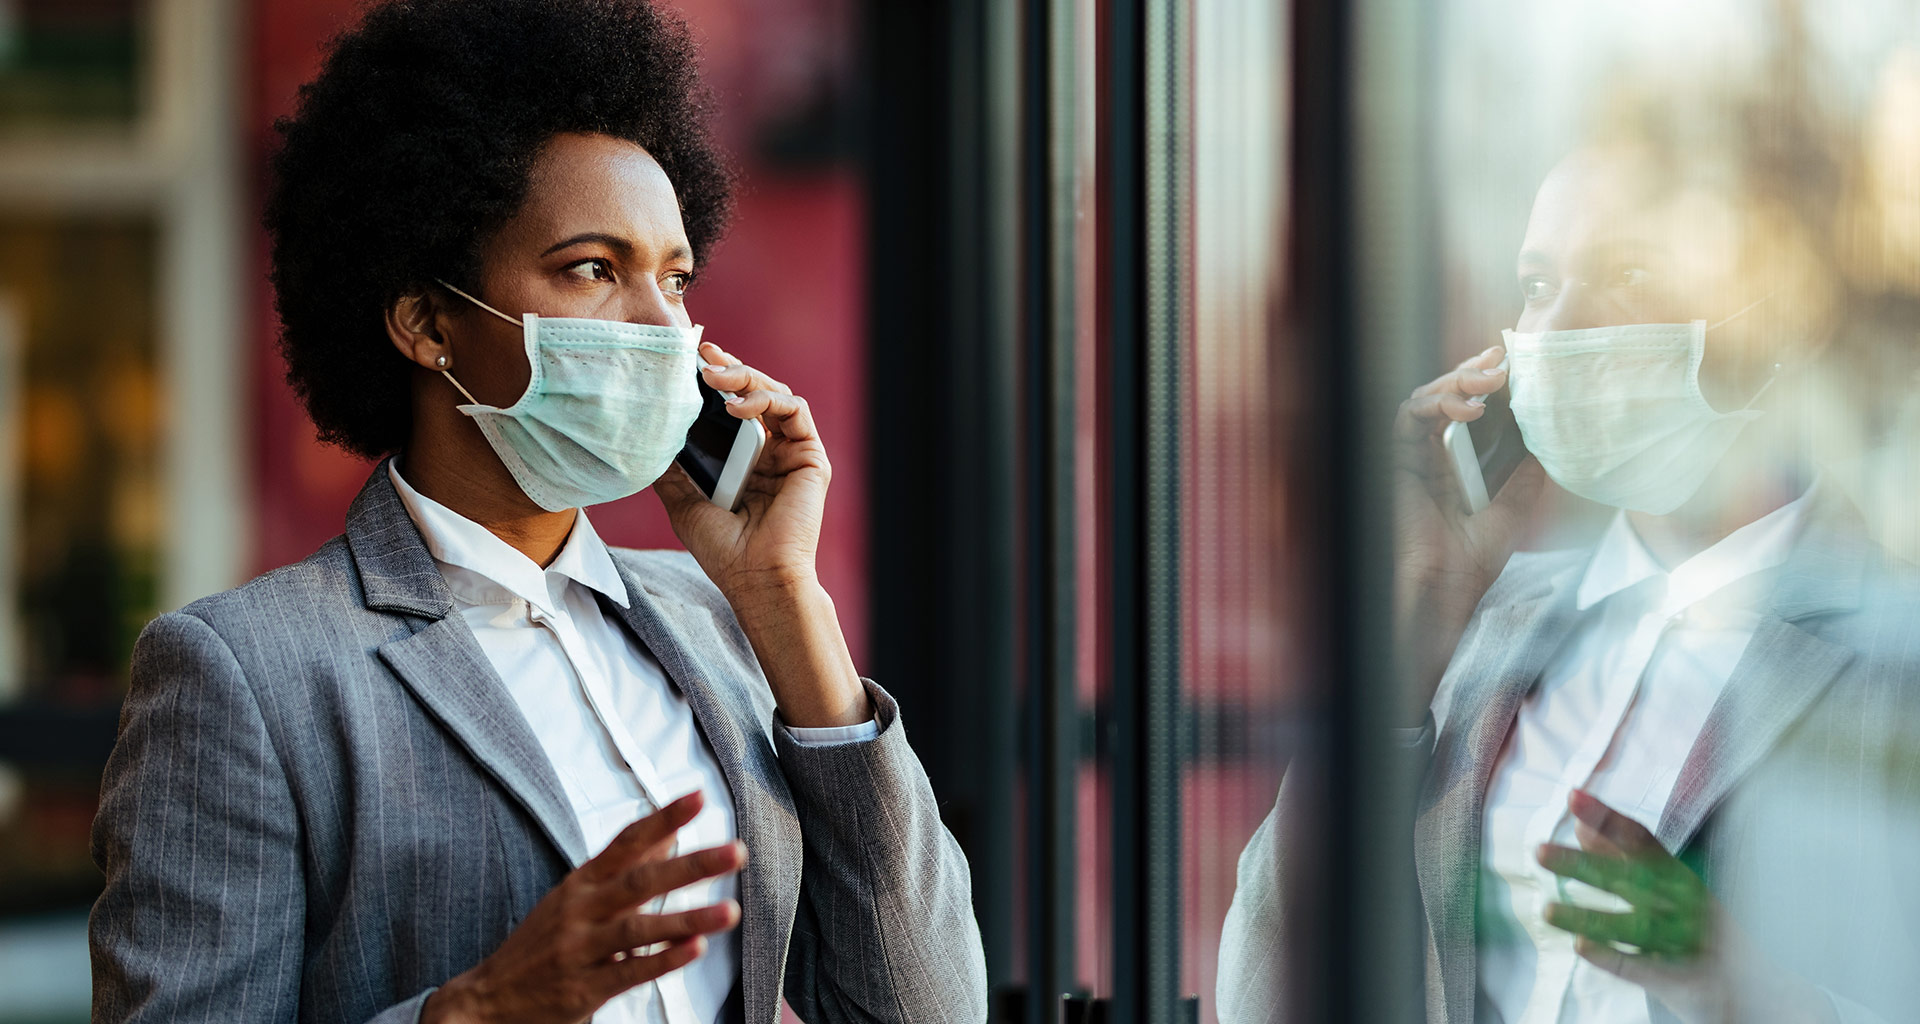 A person in a business suit is wearing a mask and talking to a person over the phone